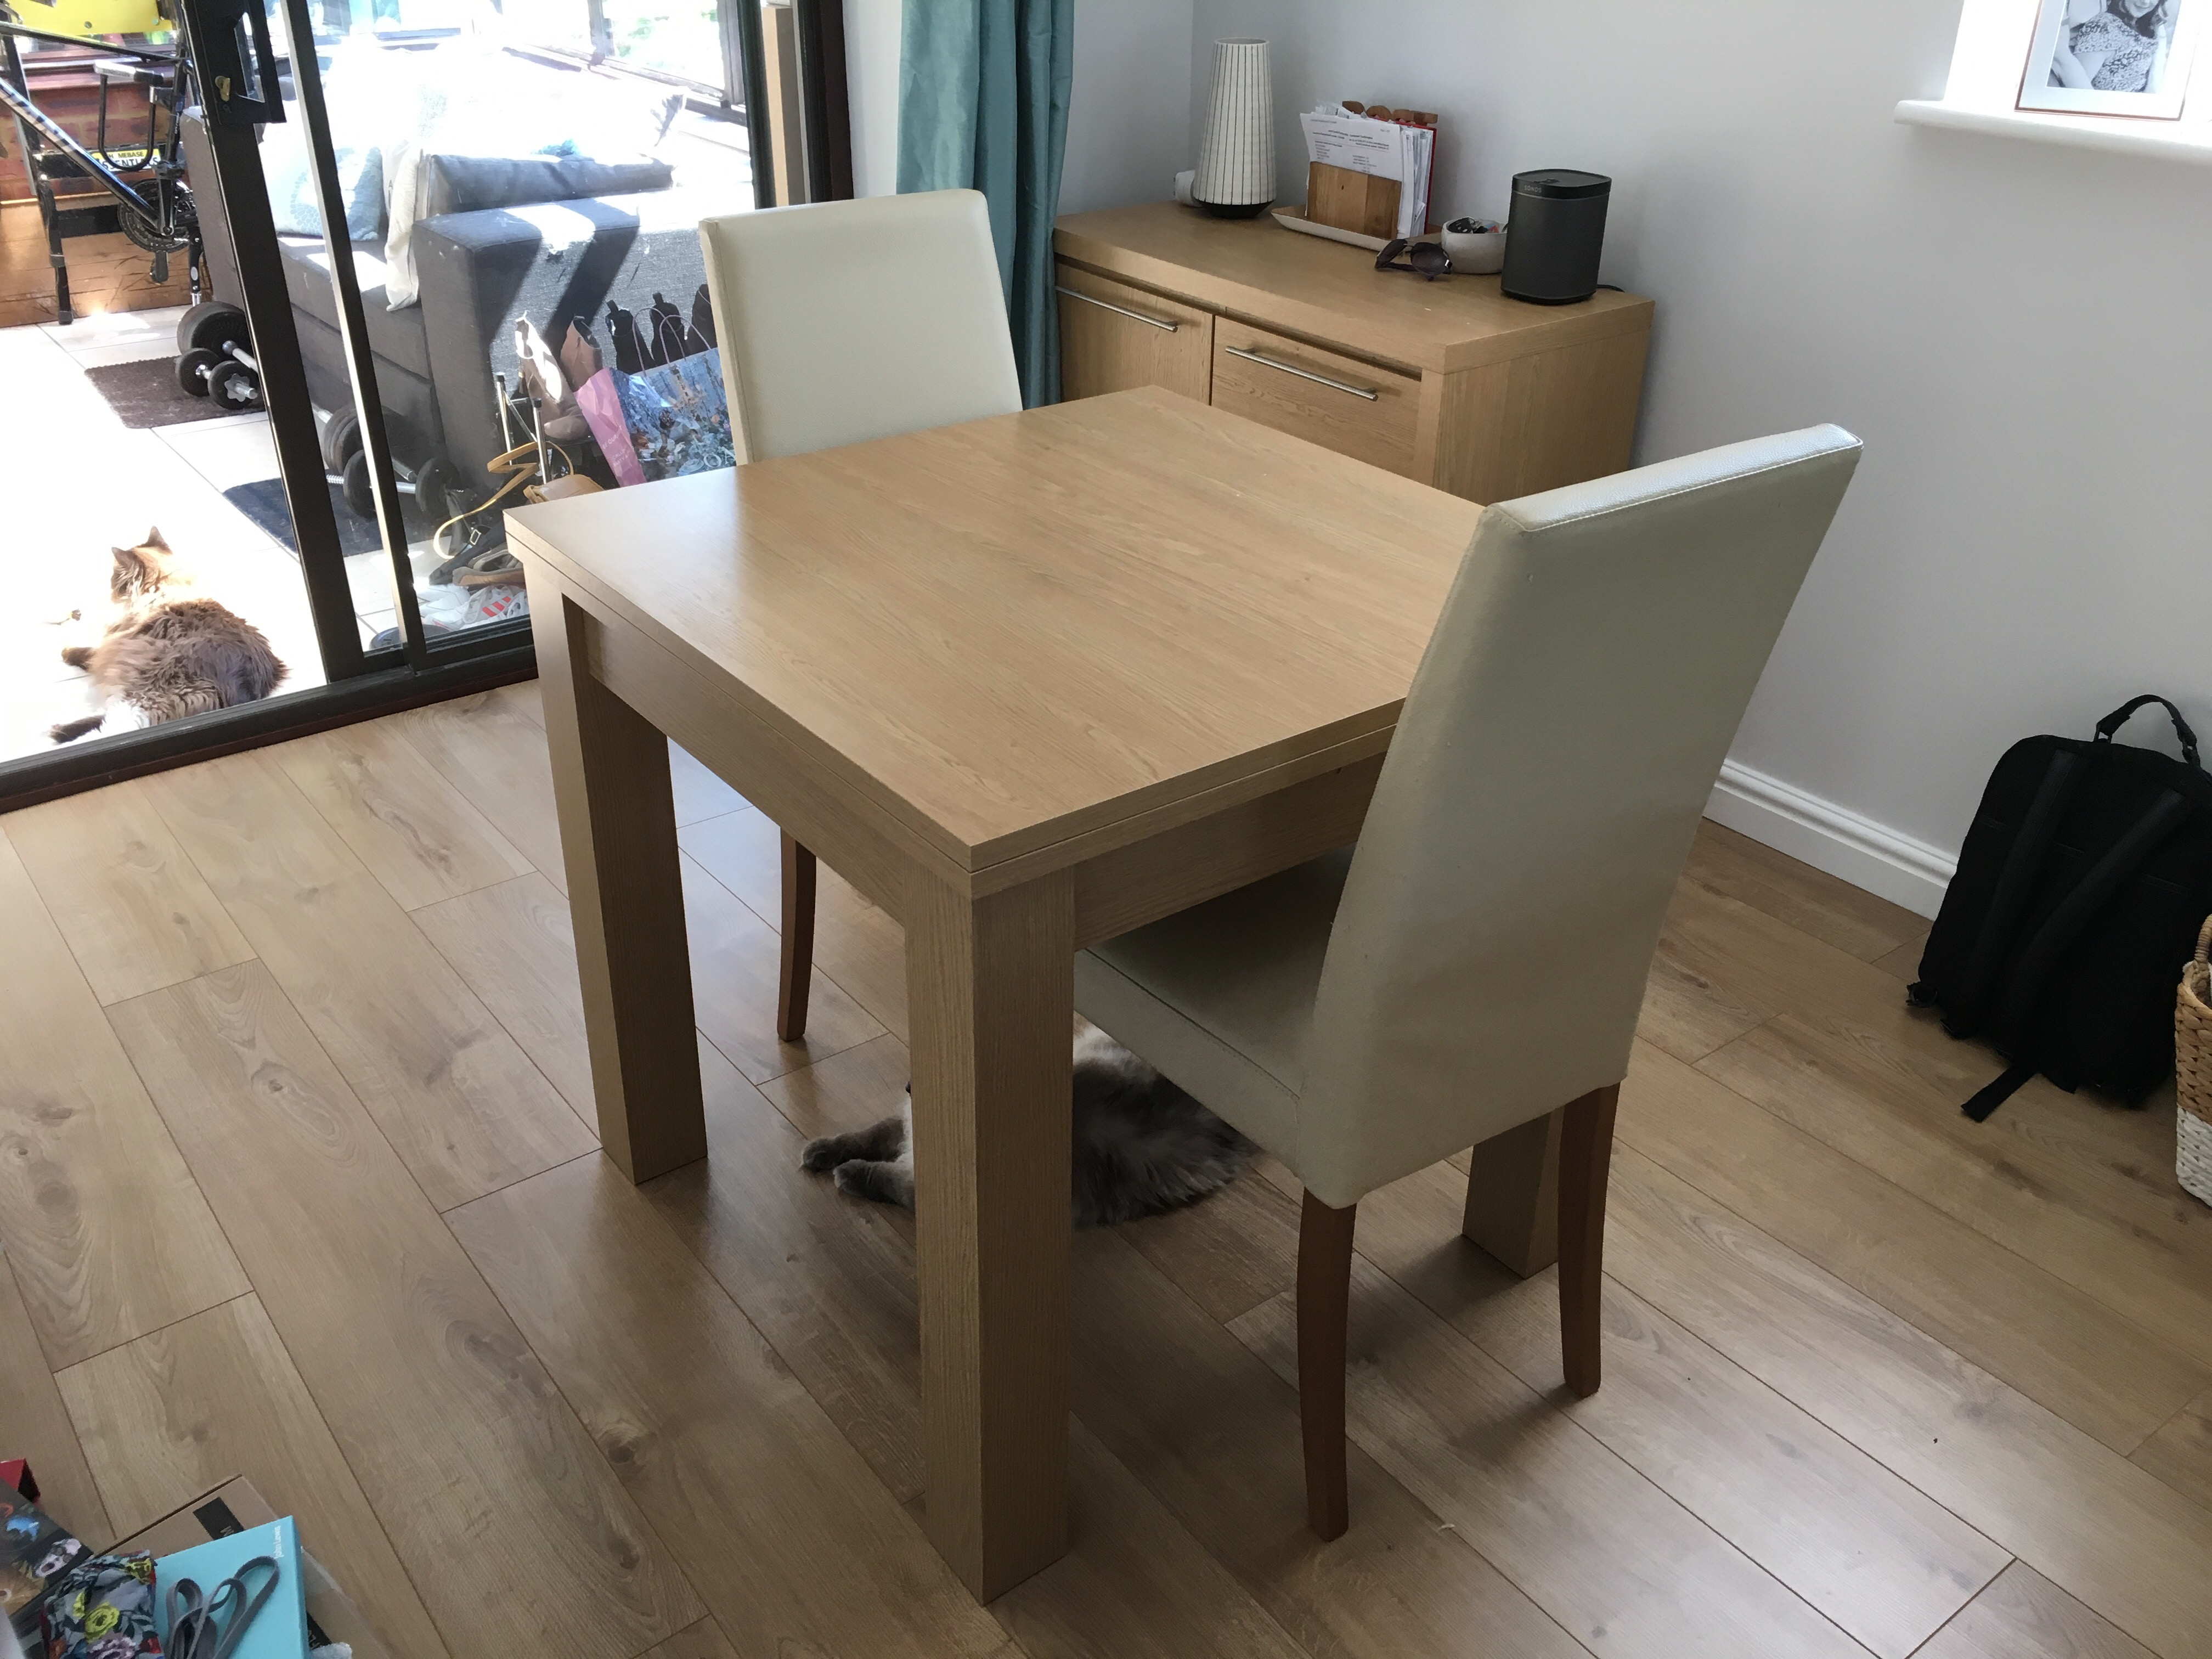 After A Little Shopping Around We Decided To Buy New Dining Table And 4 Chairs From John Lewis Alba Range In The Soft Grey Oak Combination Headed